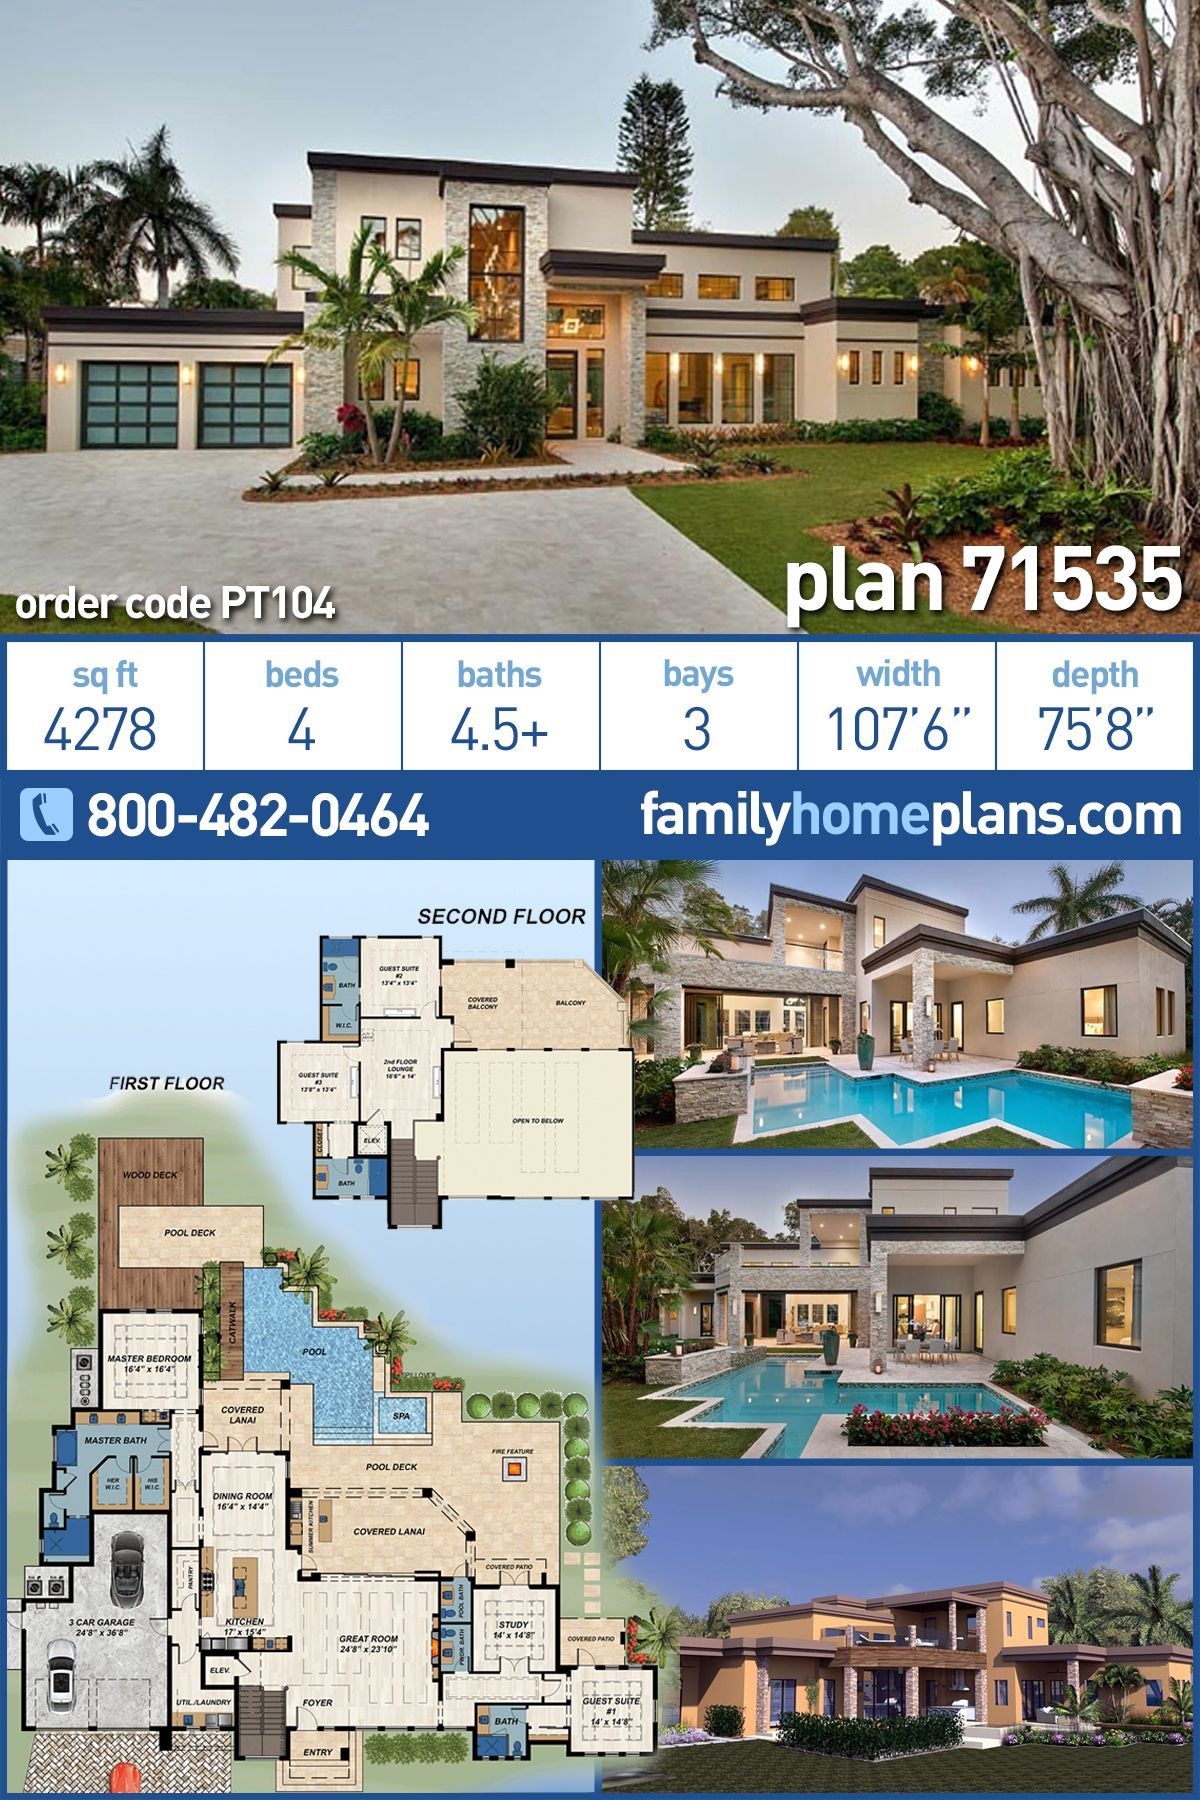 Luxury Modern Home Plan Or Florida Style House Plan Modern Home Plans Luxury Modern Homes Modern Style House Plans Florida House Plans